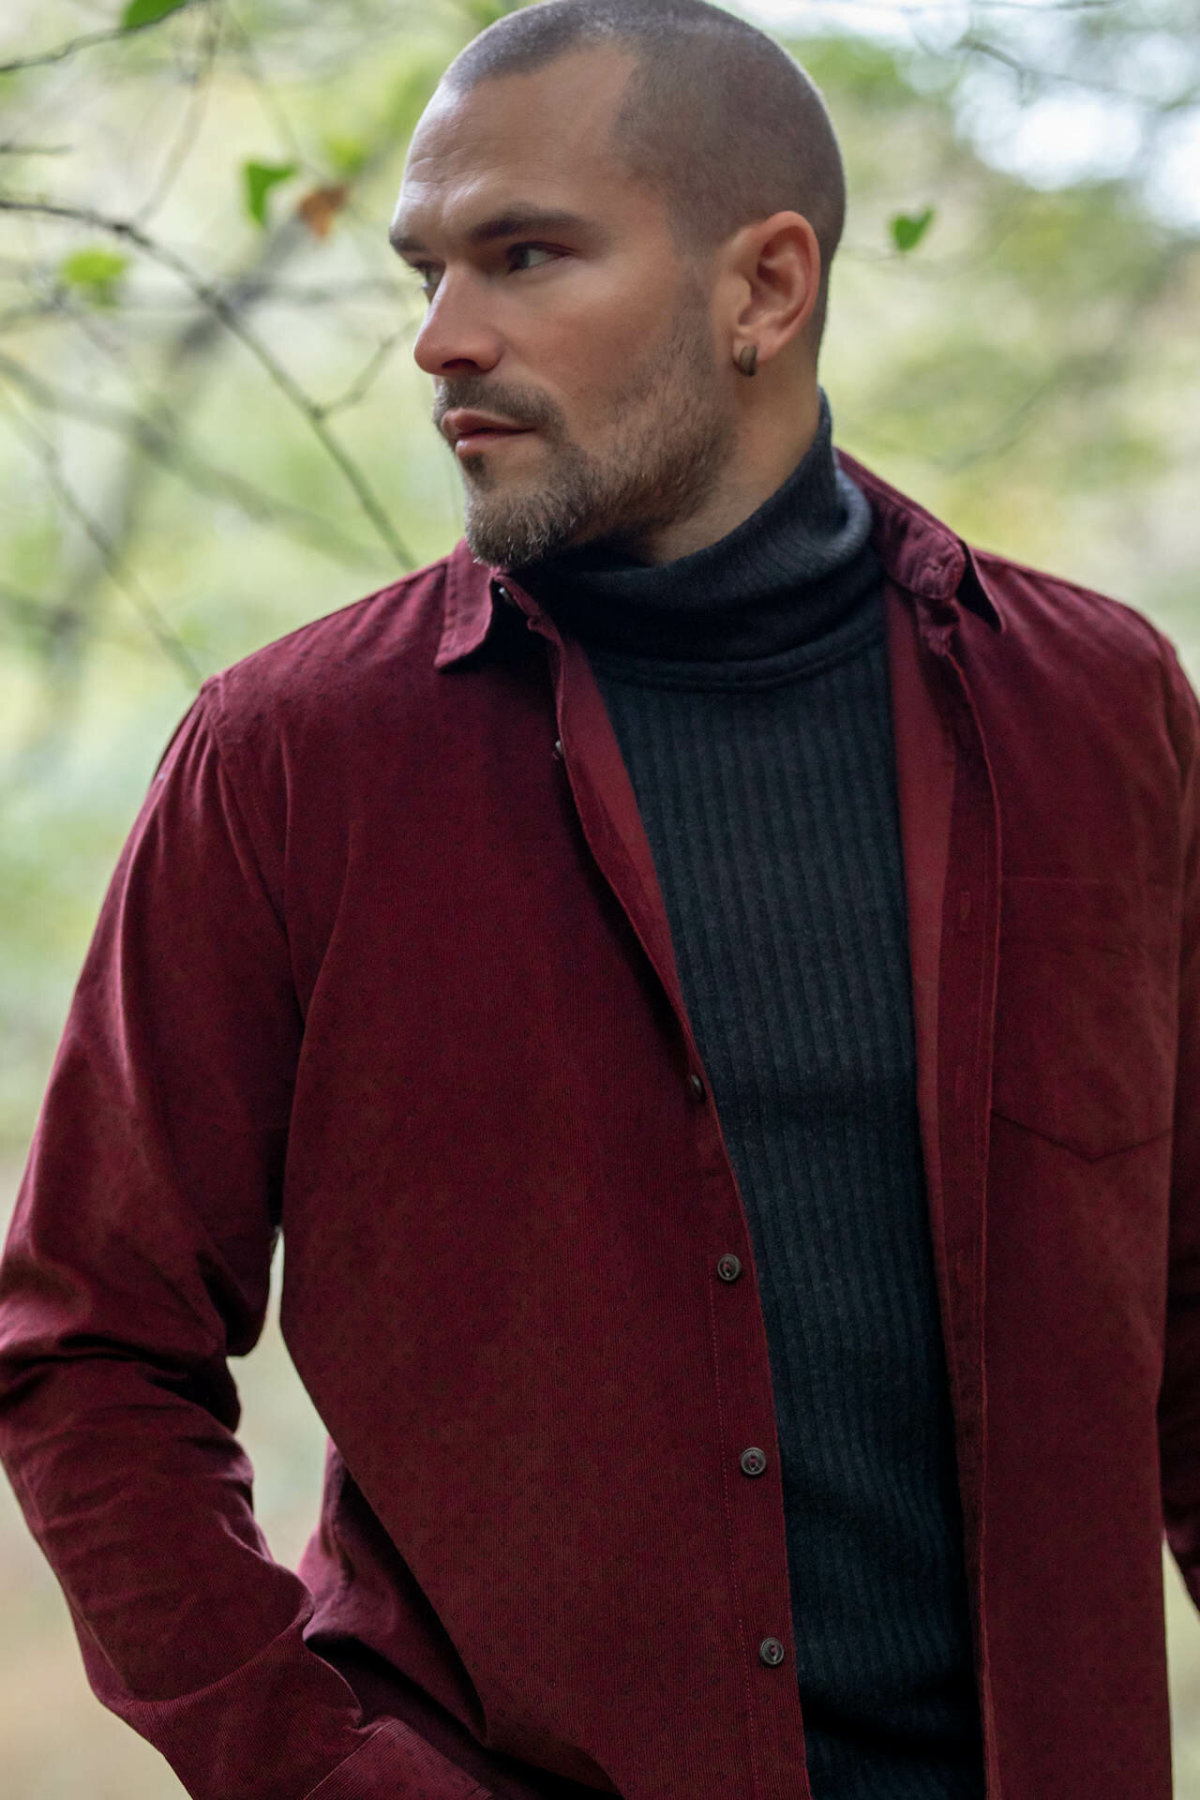 DeFacto Man Long Sleeve Wine Red Shirt Fashion Turn-down Collar Men Casual Top Shirts Best Selling-J1158AZ18WN